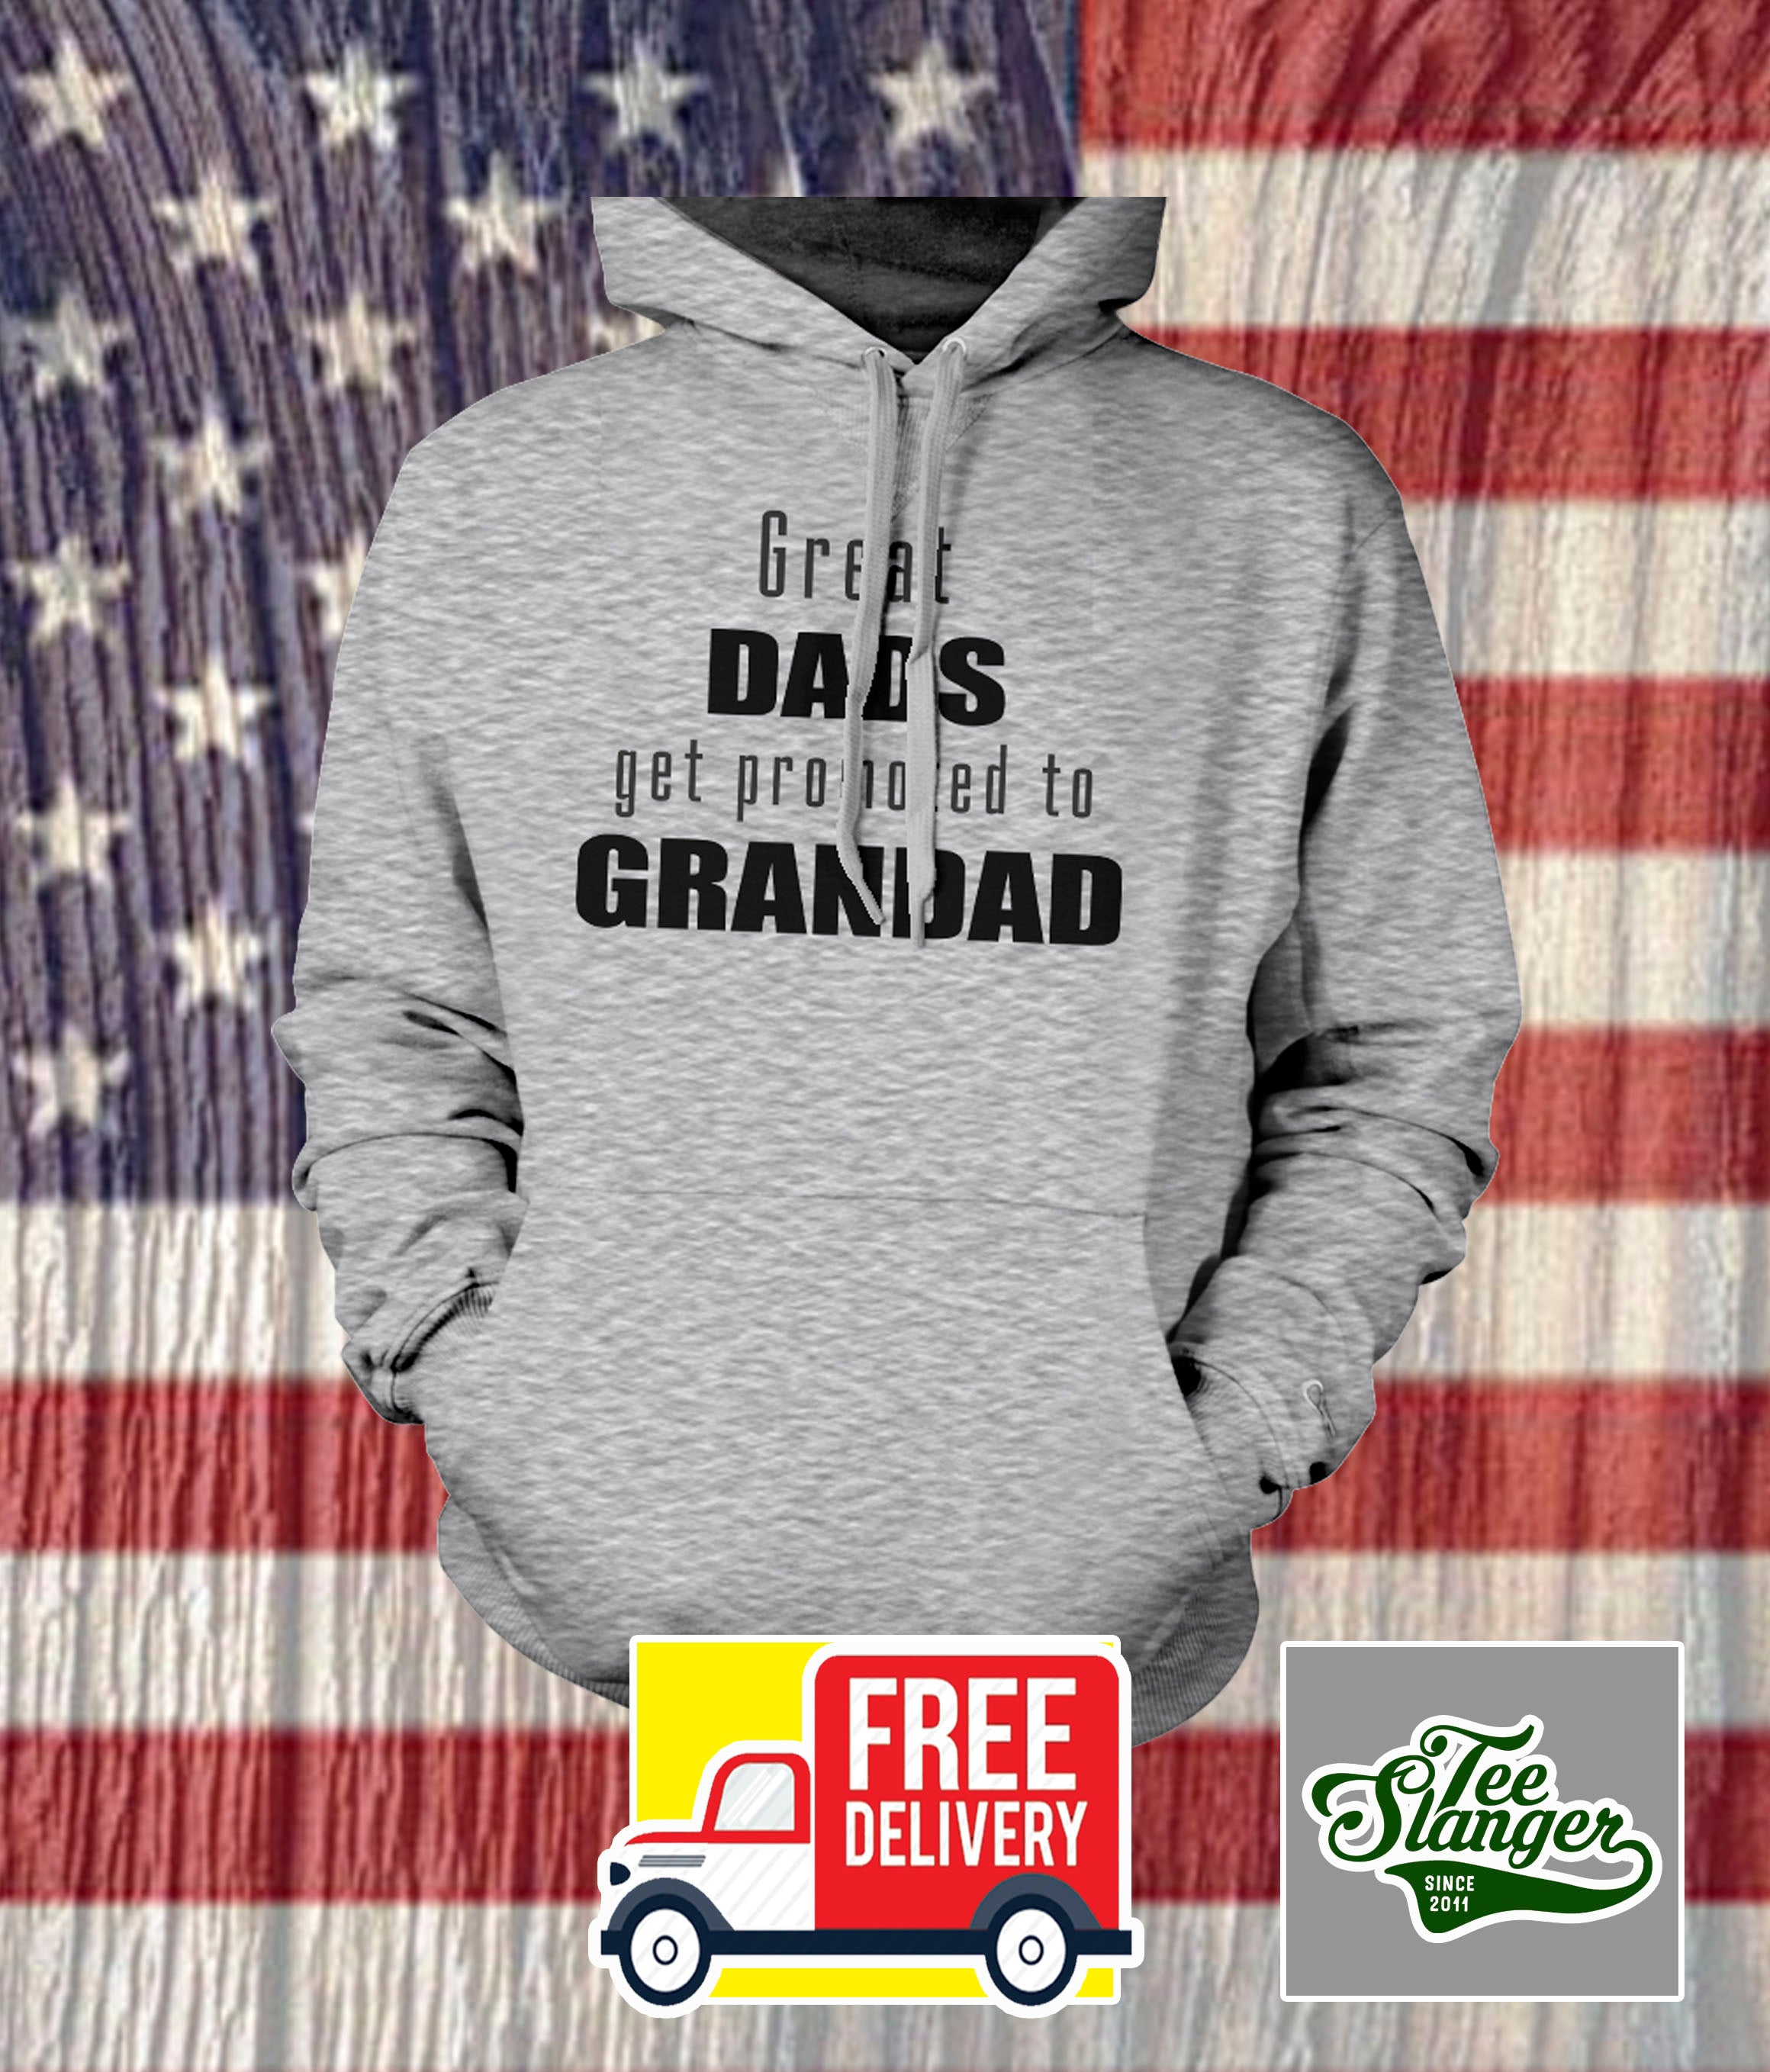 GREAT DADS GET PROMOTED TO GRANDAD HOODIE